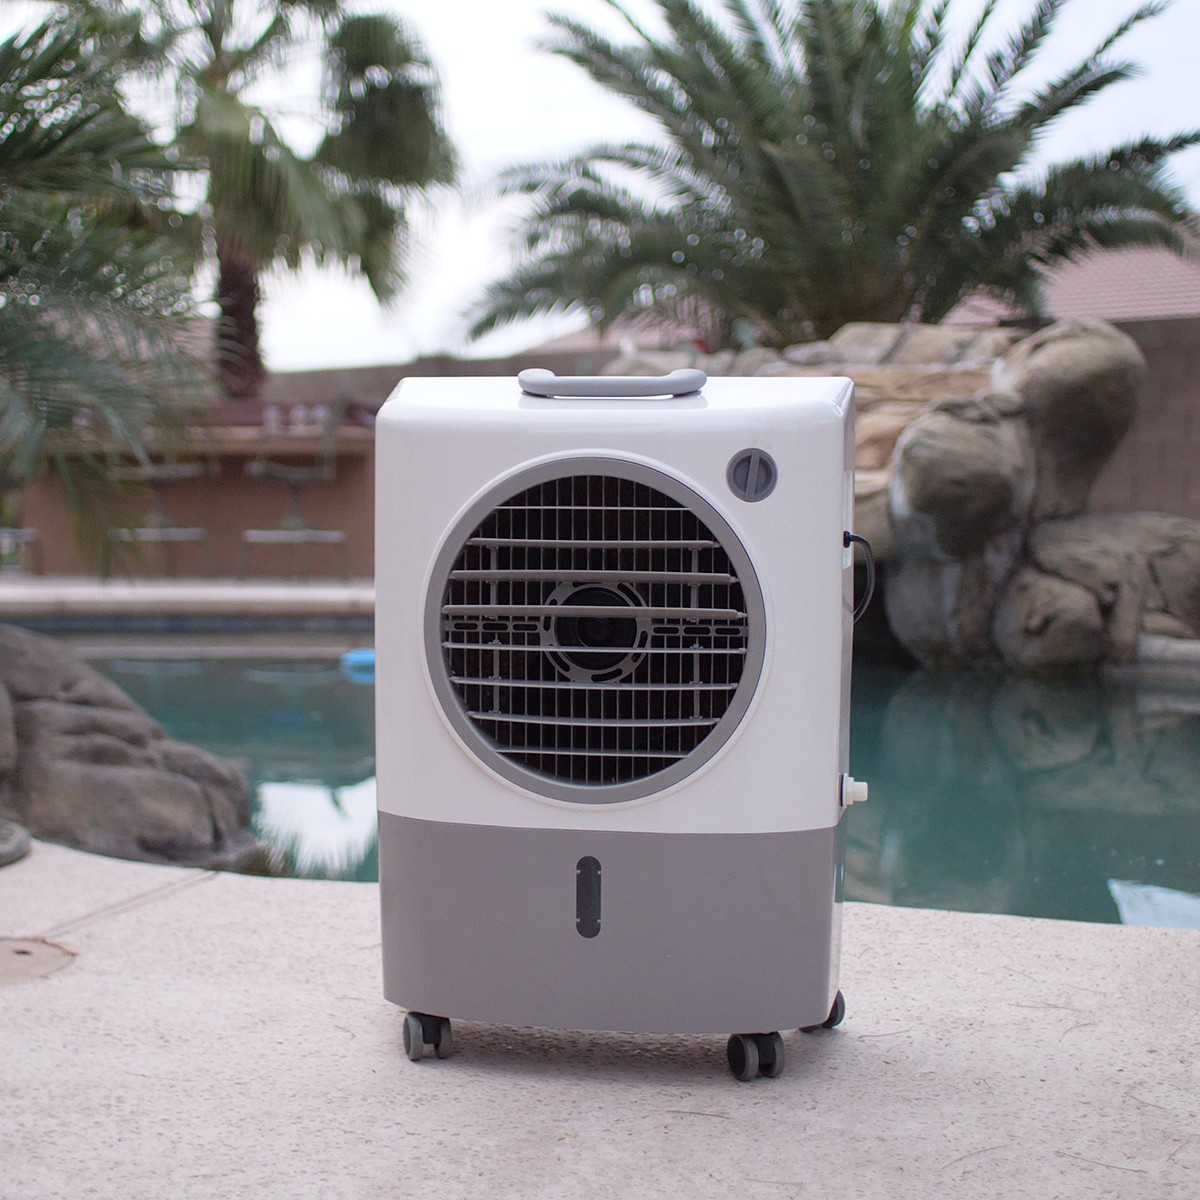 Hessaire MC18M 1,300 CFM Evaporative Air Cooler